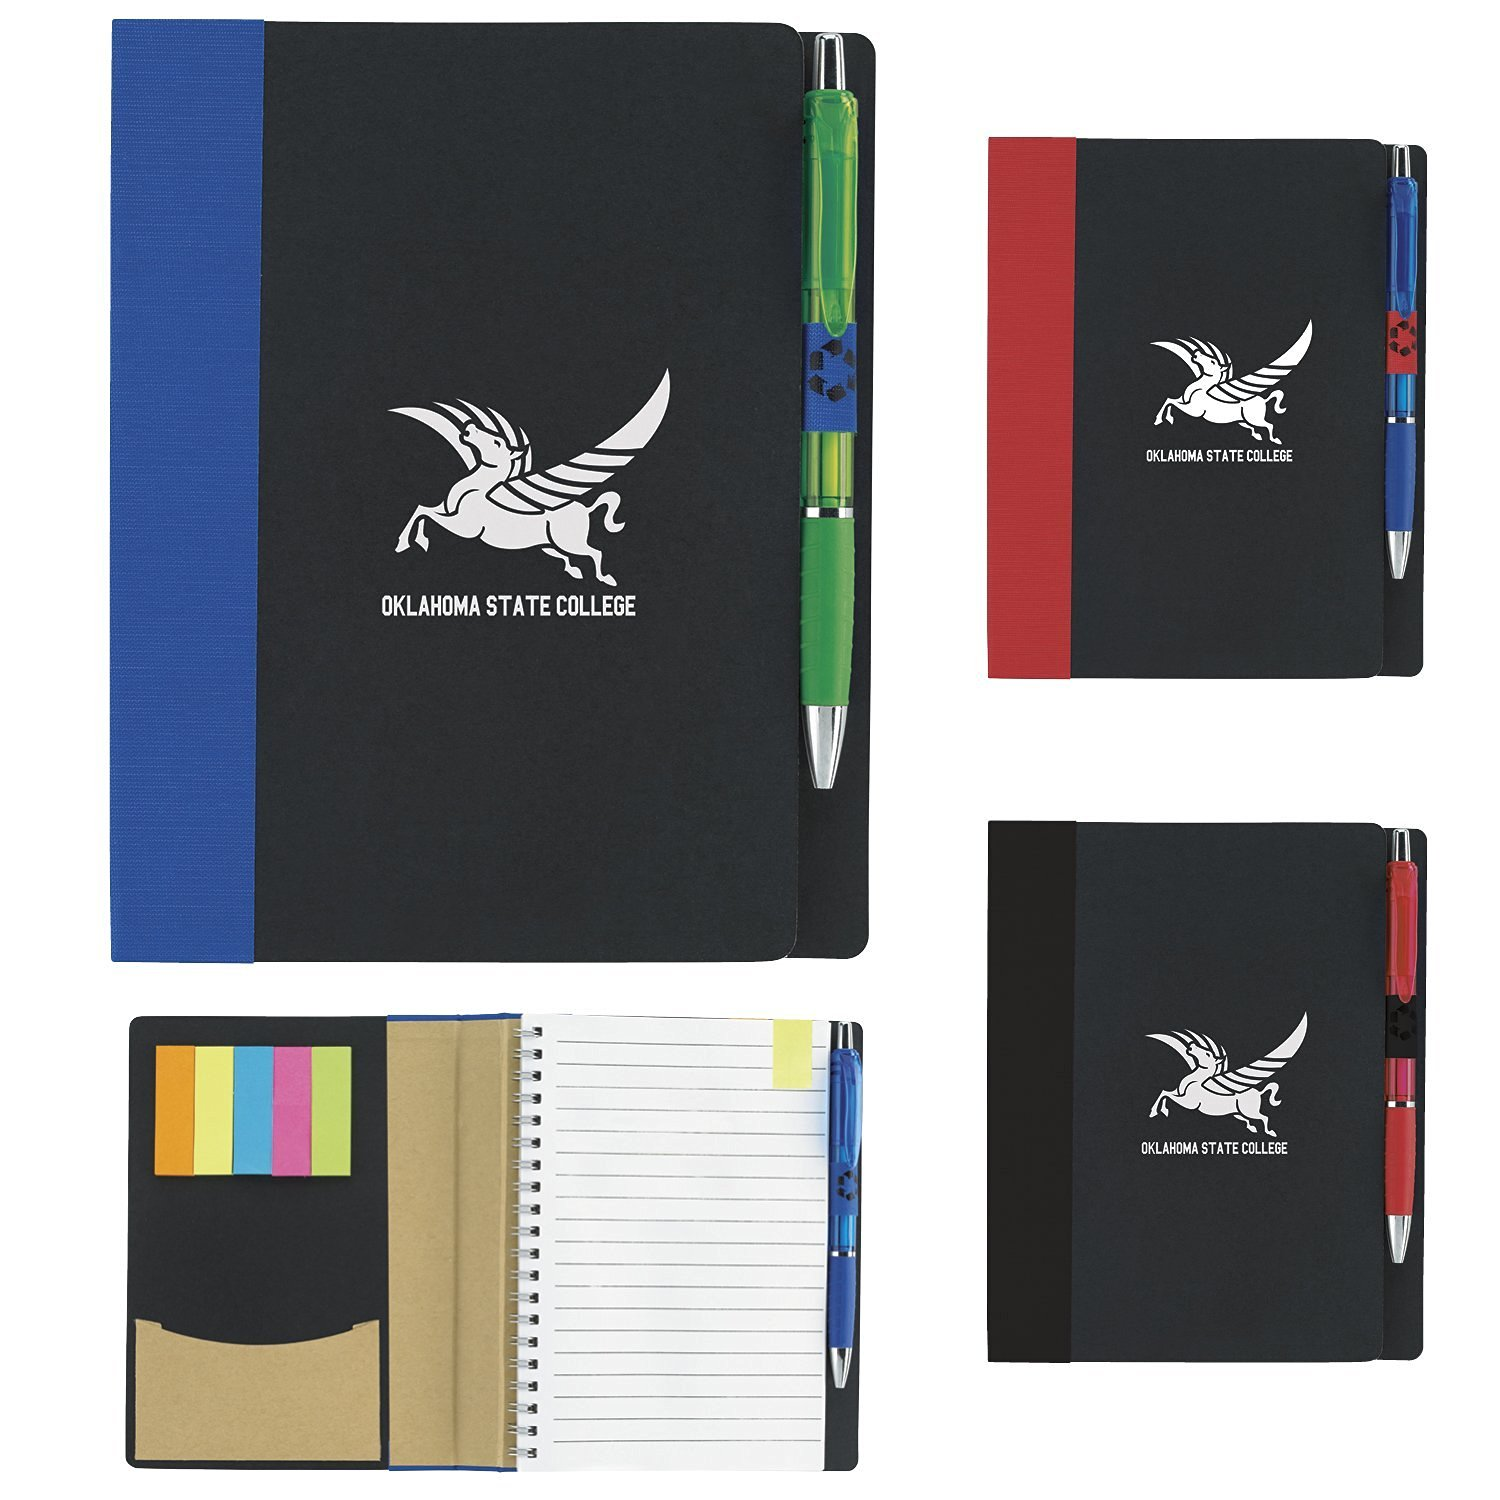 Eco Notebook w/ Flags - 100 Quantity - PROMOTIONAL PRODUCT / BULK / BRANDED with YOUR LOGO / CUSTOMIZED - Kineticpromos #15693 (Red)